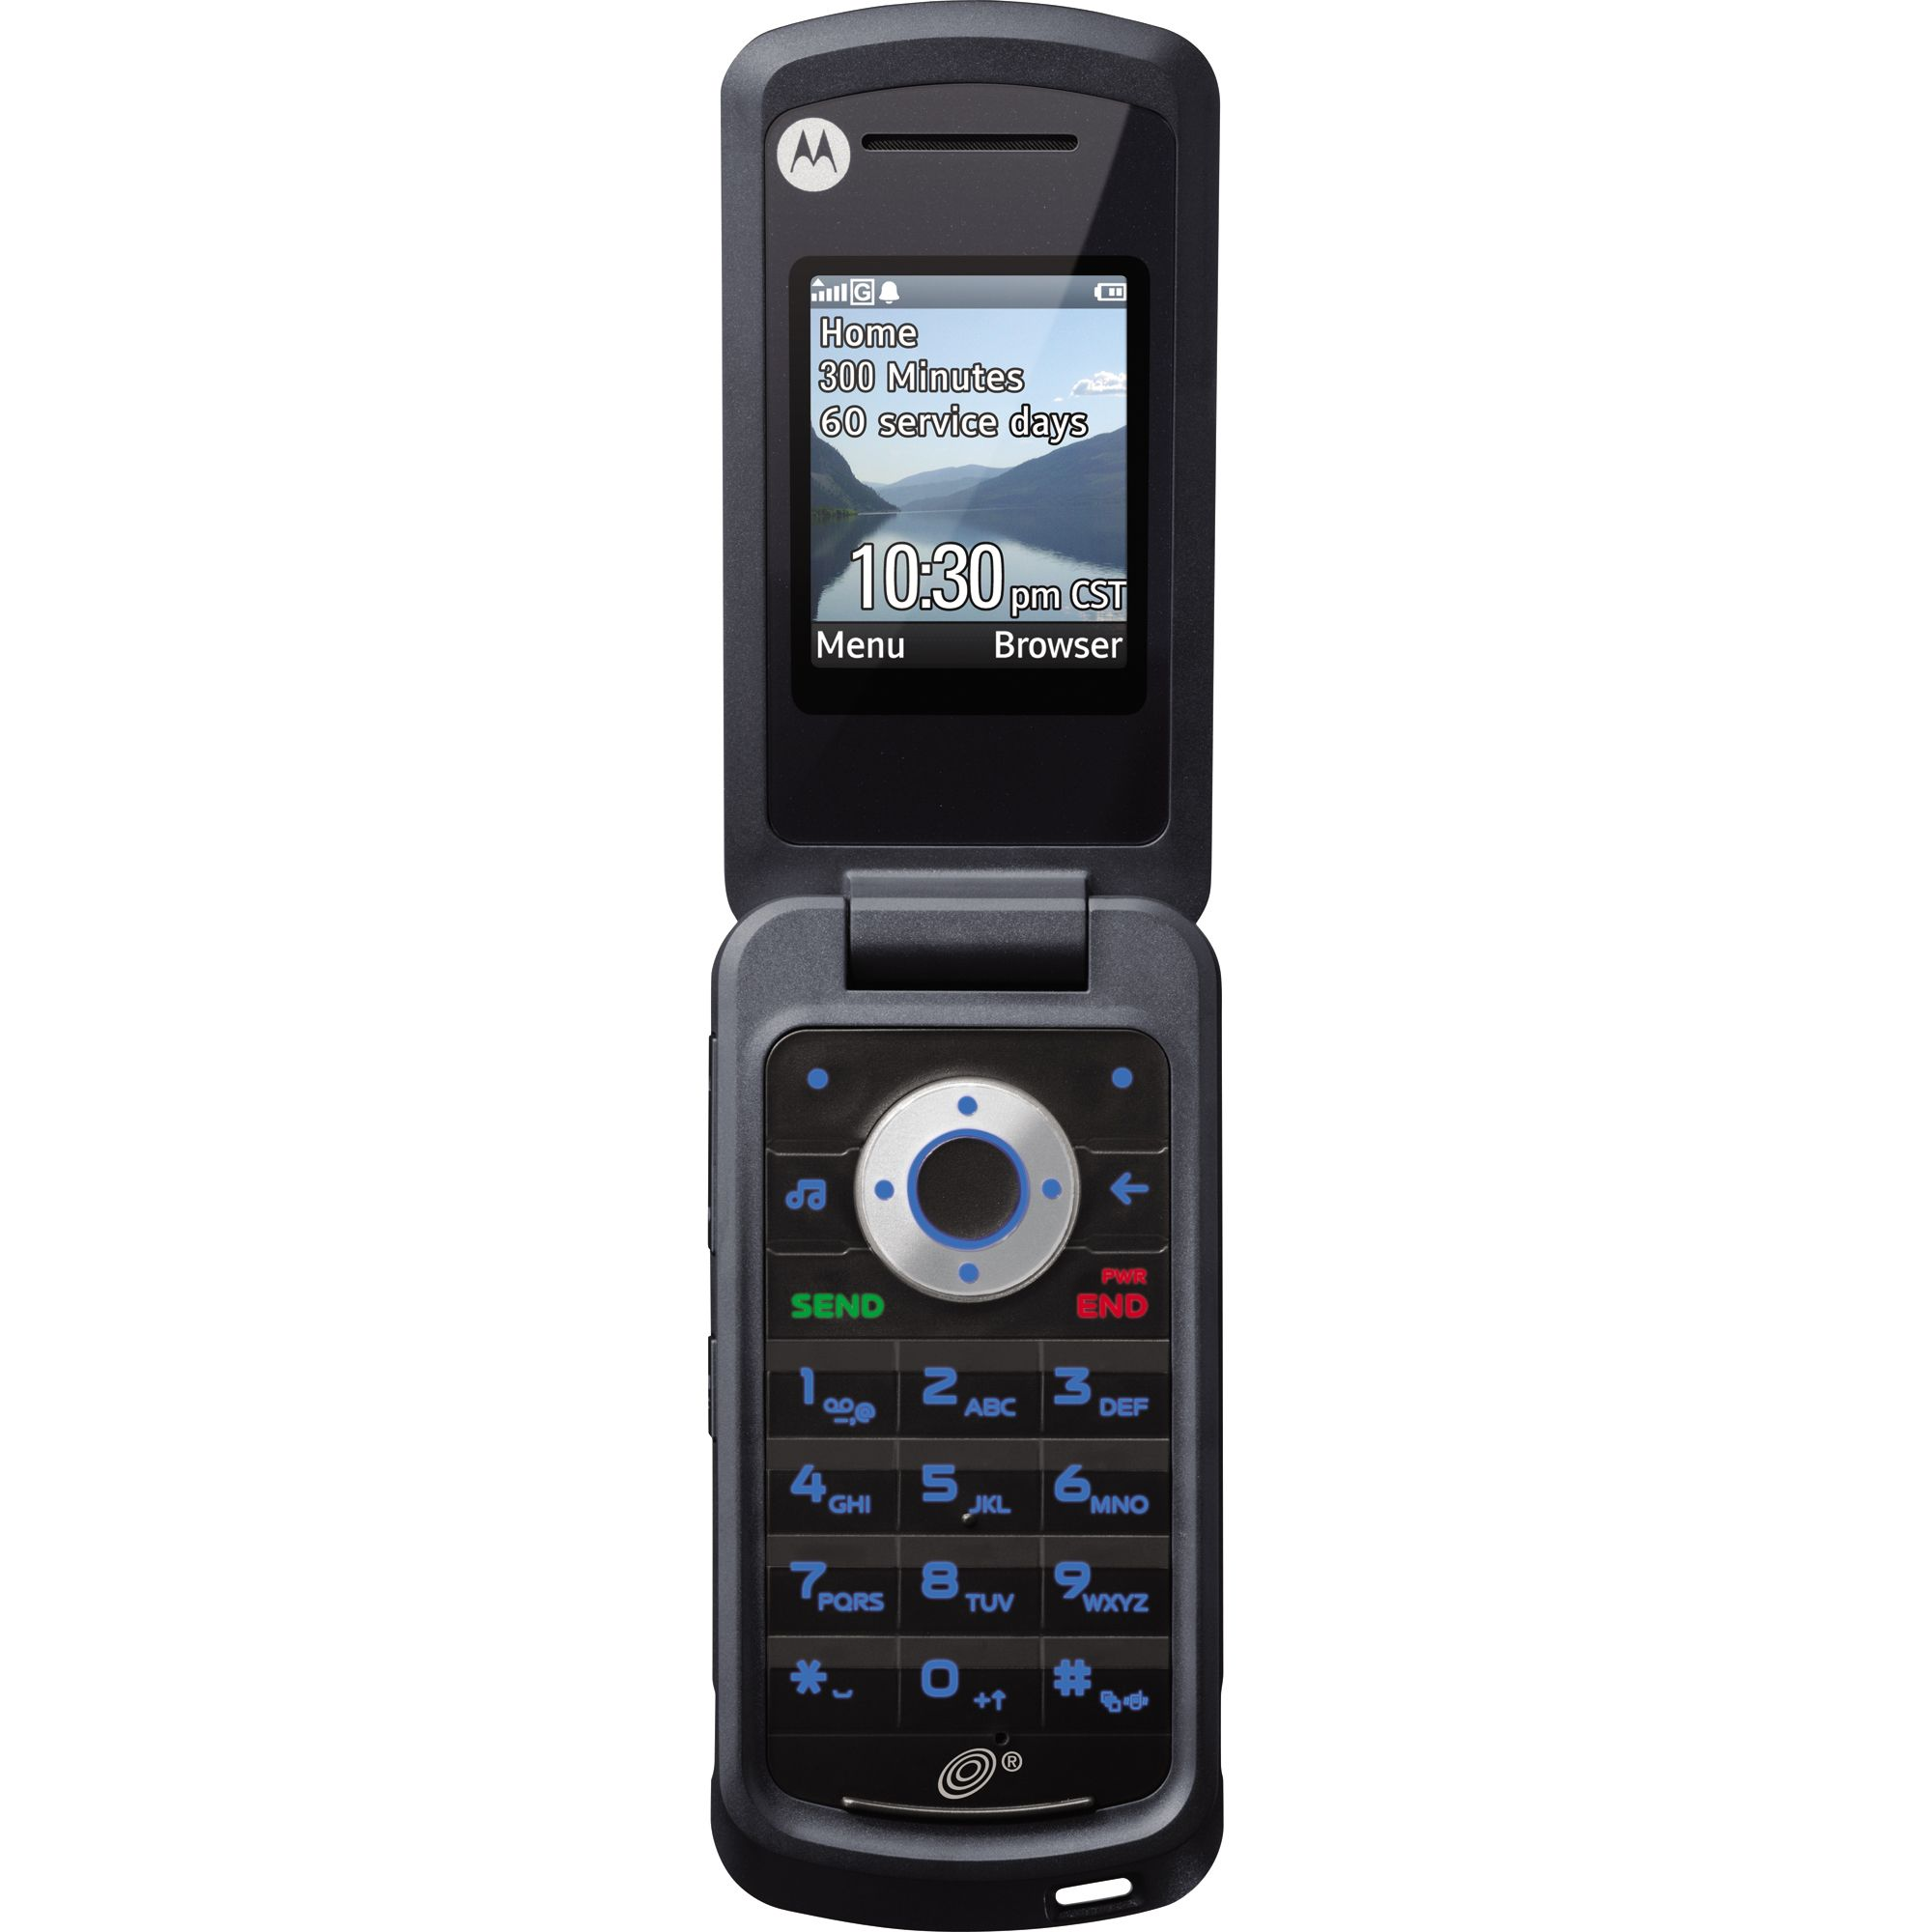 Net10 W408 -contract Mobile Phone - Black Tvs & Electronics Phones Cell